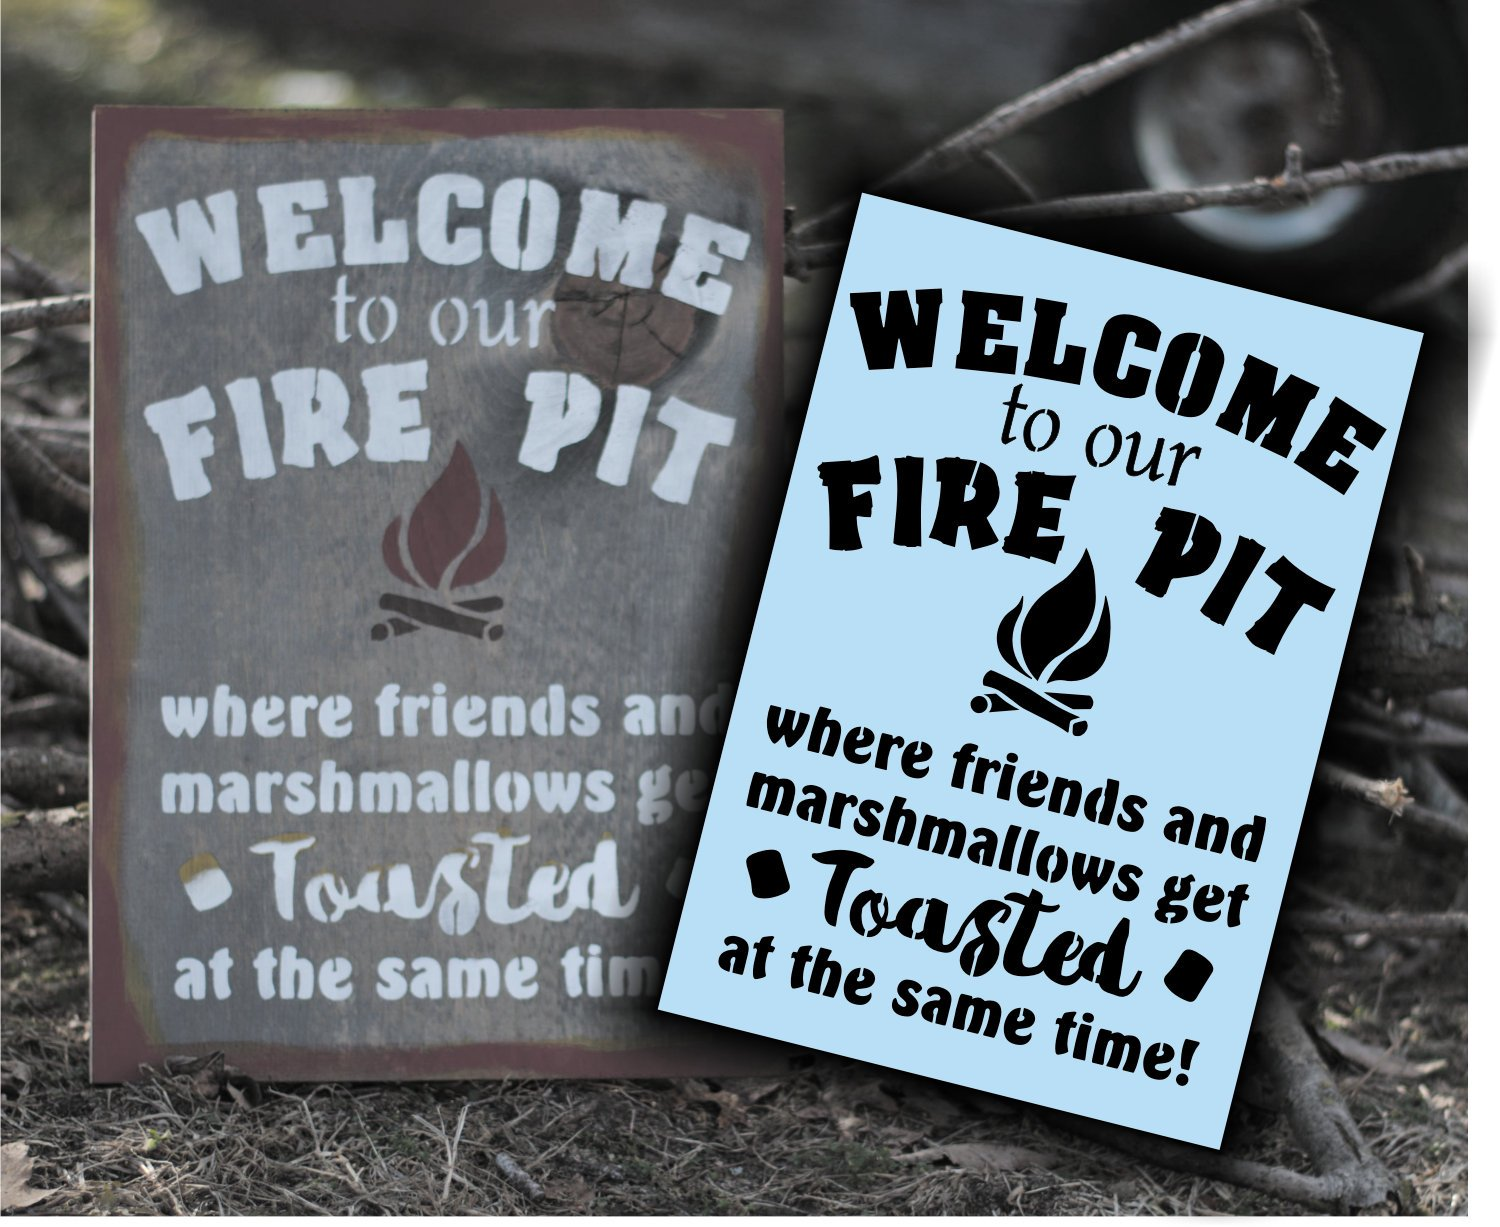 Fire Pit Stencil - Paint Your Own Sign, Welcome To Our Firepit - Plastic Stencil